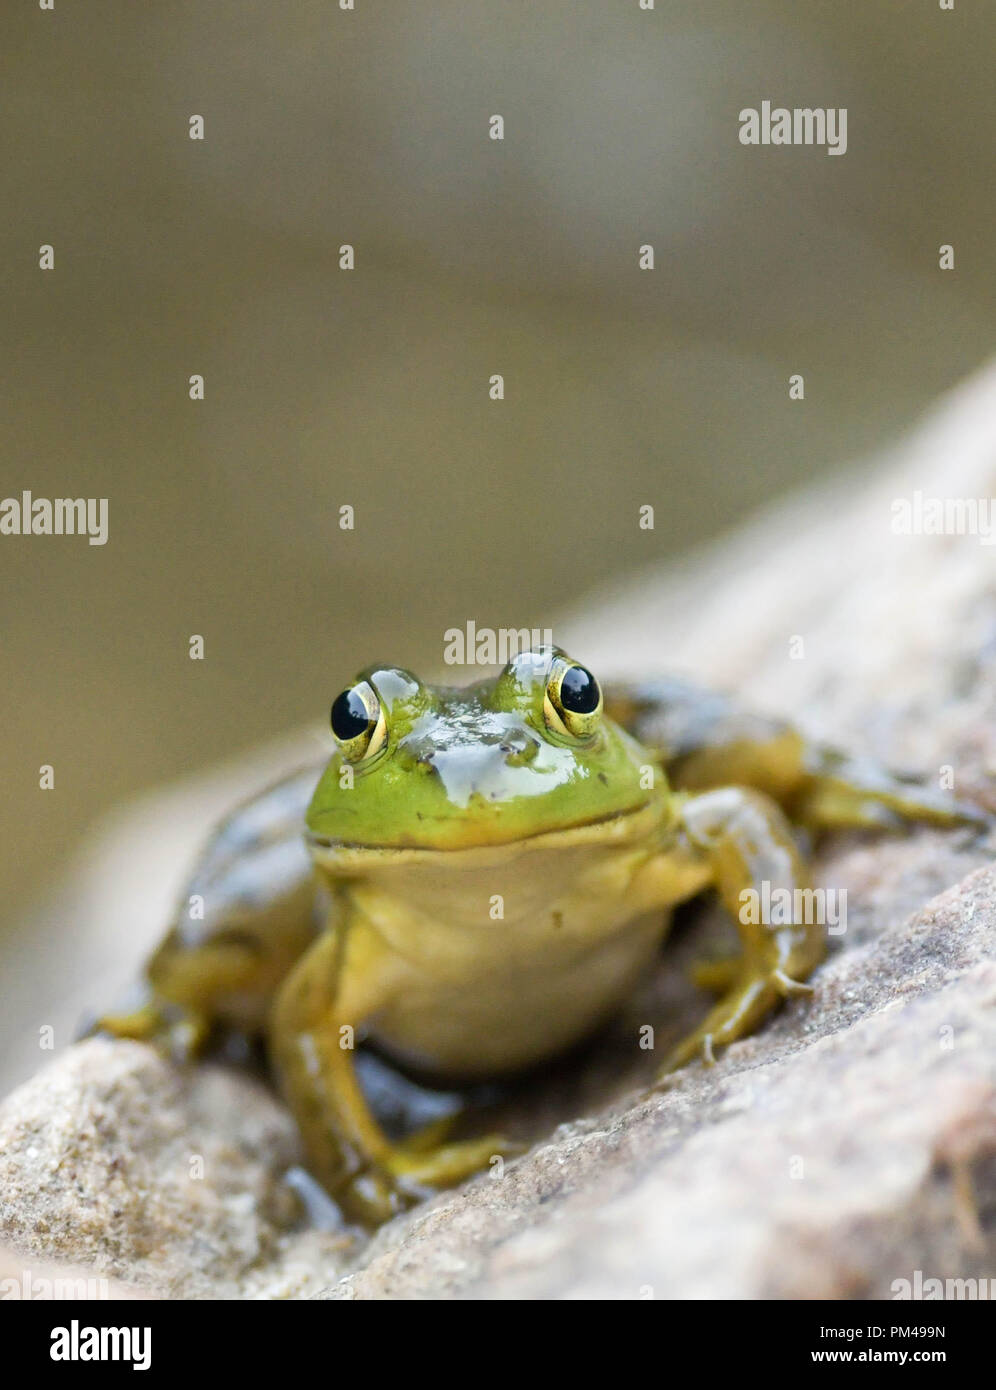 A green frog sits on a rock by a pond in New Hampshire, USA, at dusk. Stock Photo